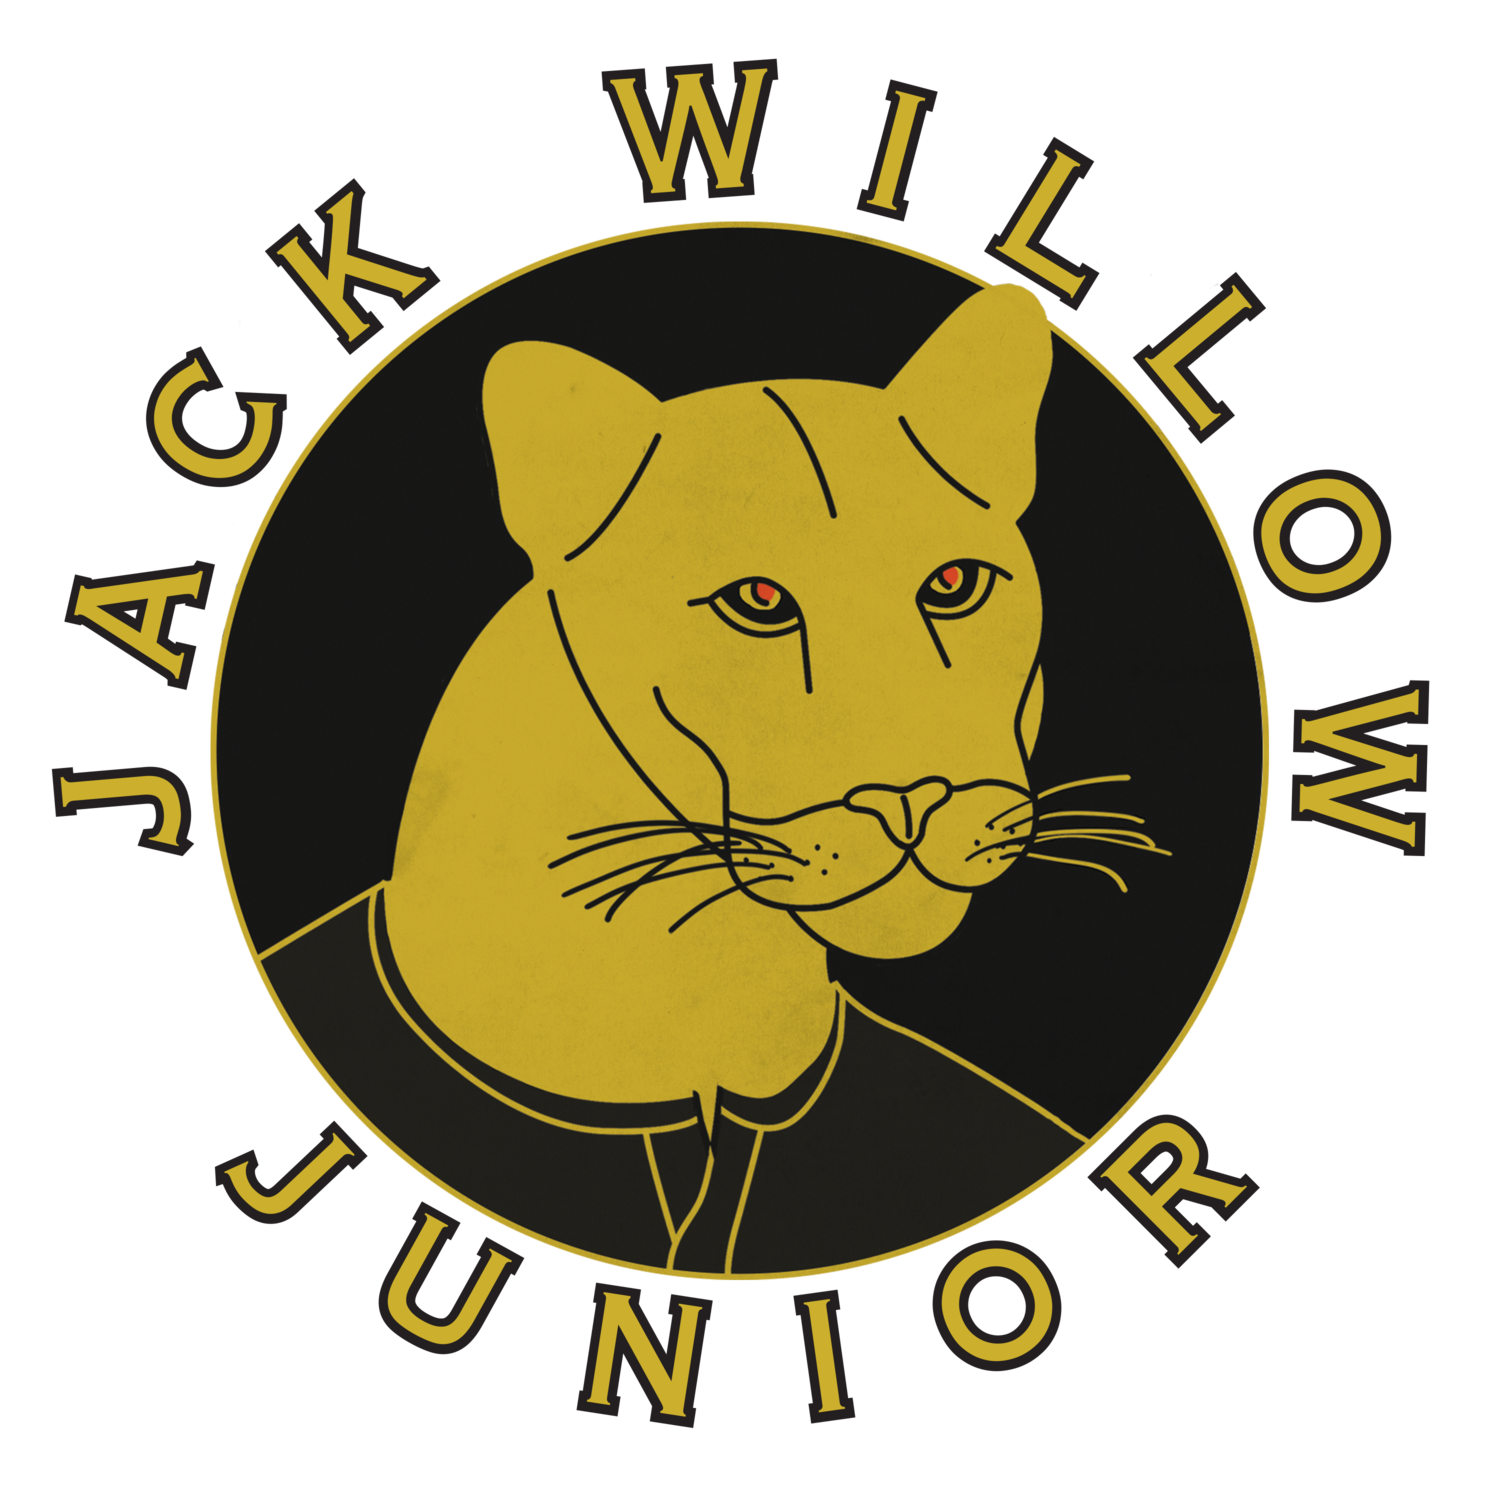 Jack Willow Junior